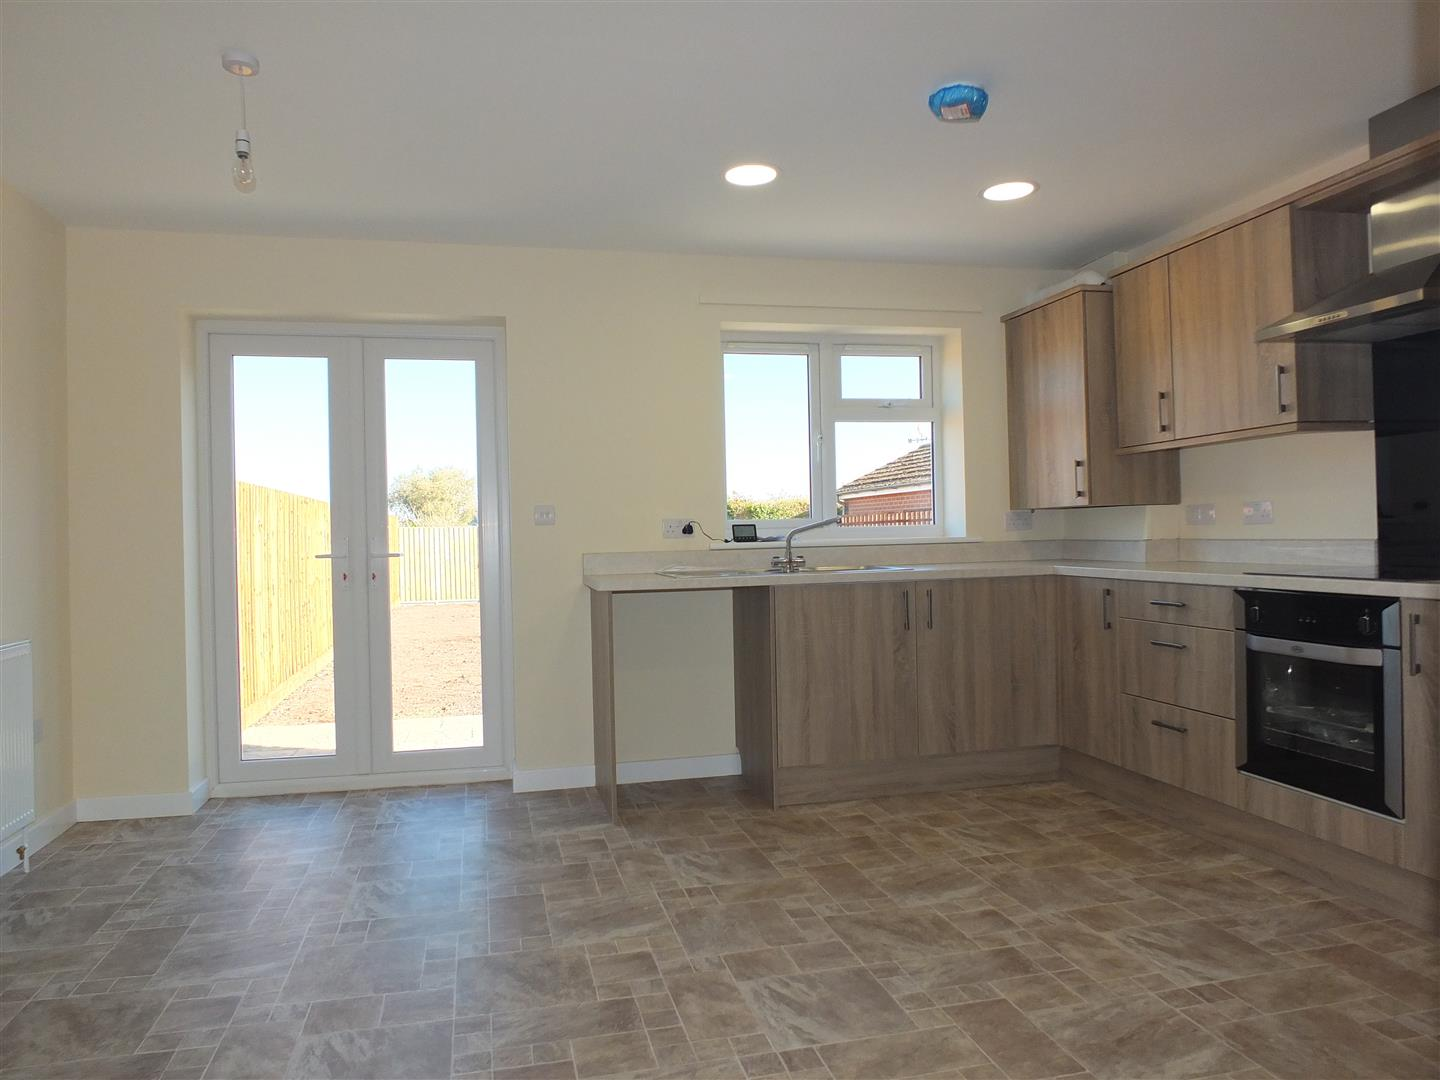 2 bed house to rent in Little London, Long Sutton Spalding 7